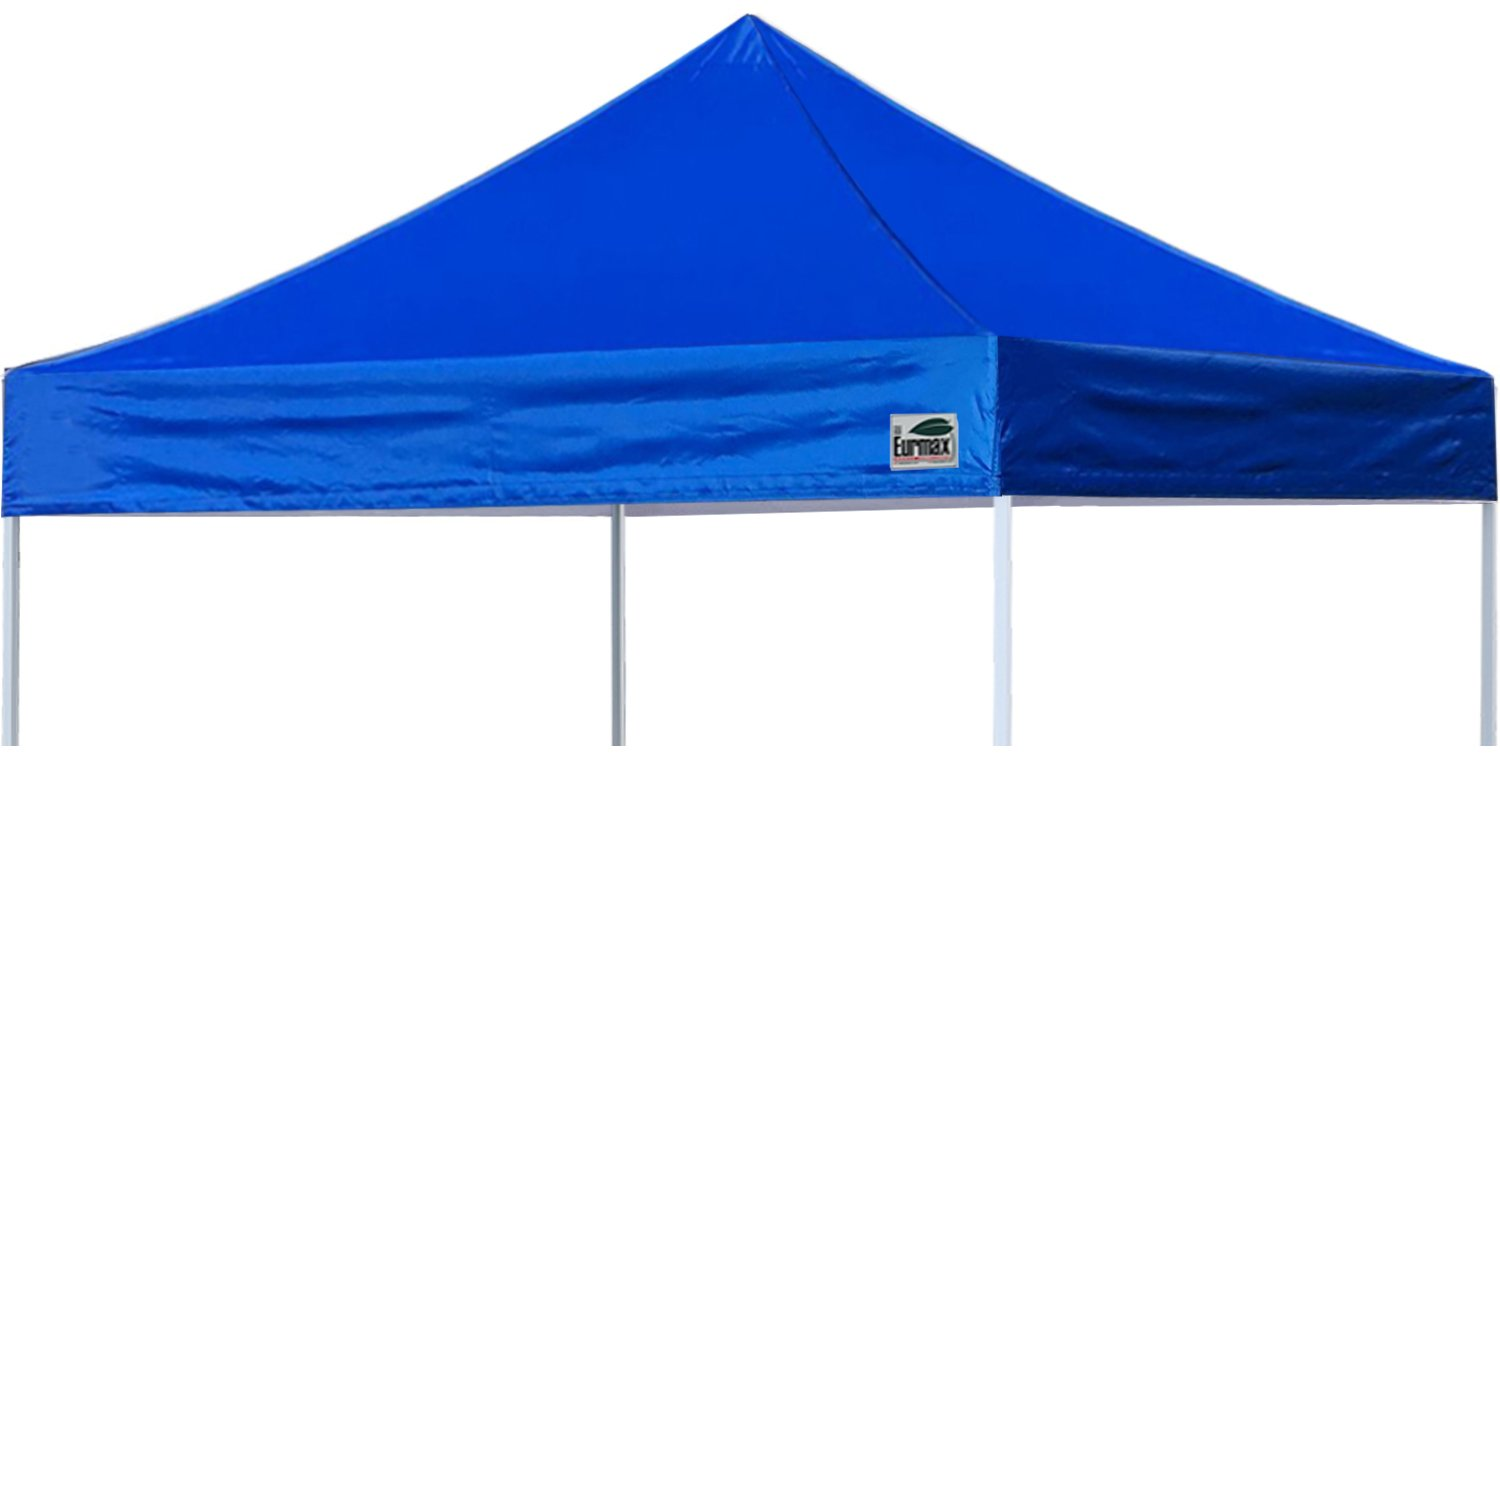 Eurmax New Pop up 10x10 Replacement Instant Ez Canopy Top Cover Choose 15 Colors (Blue)